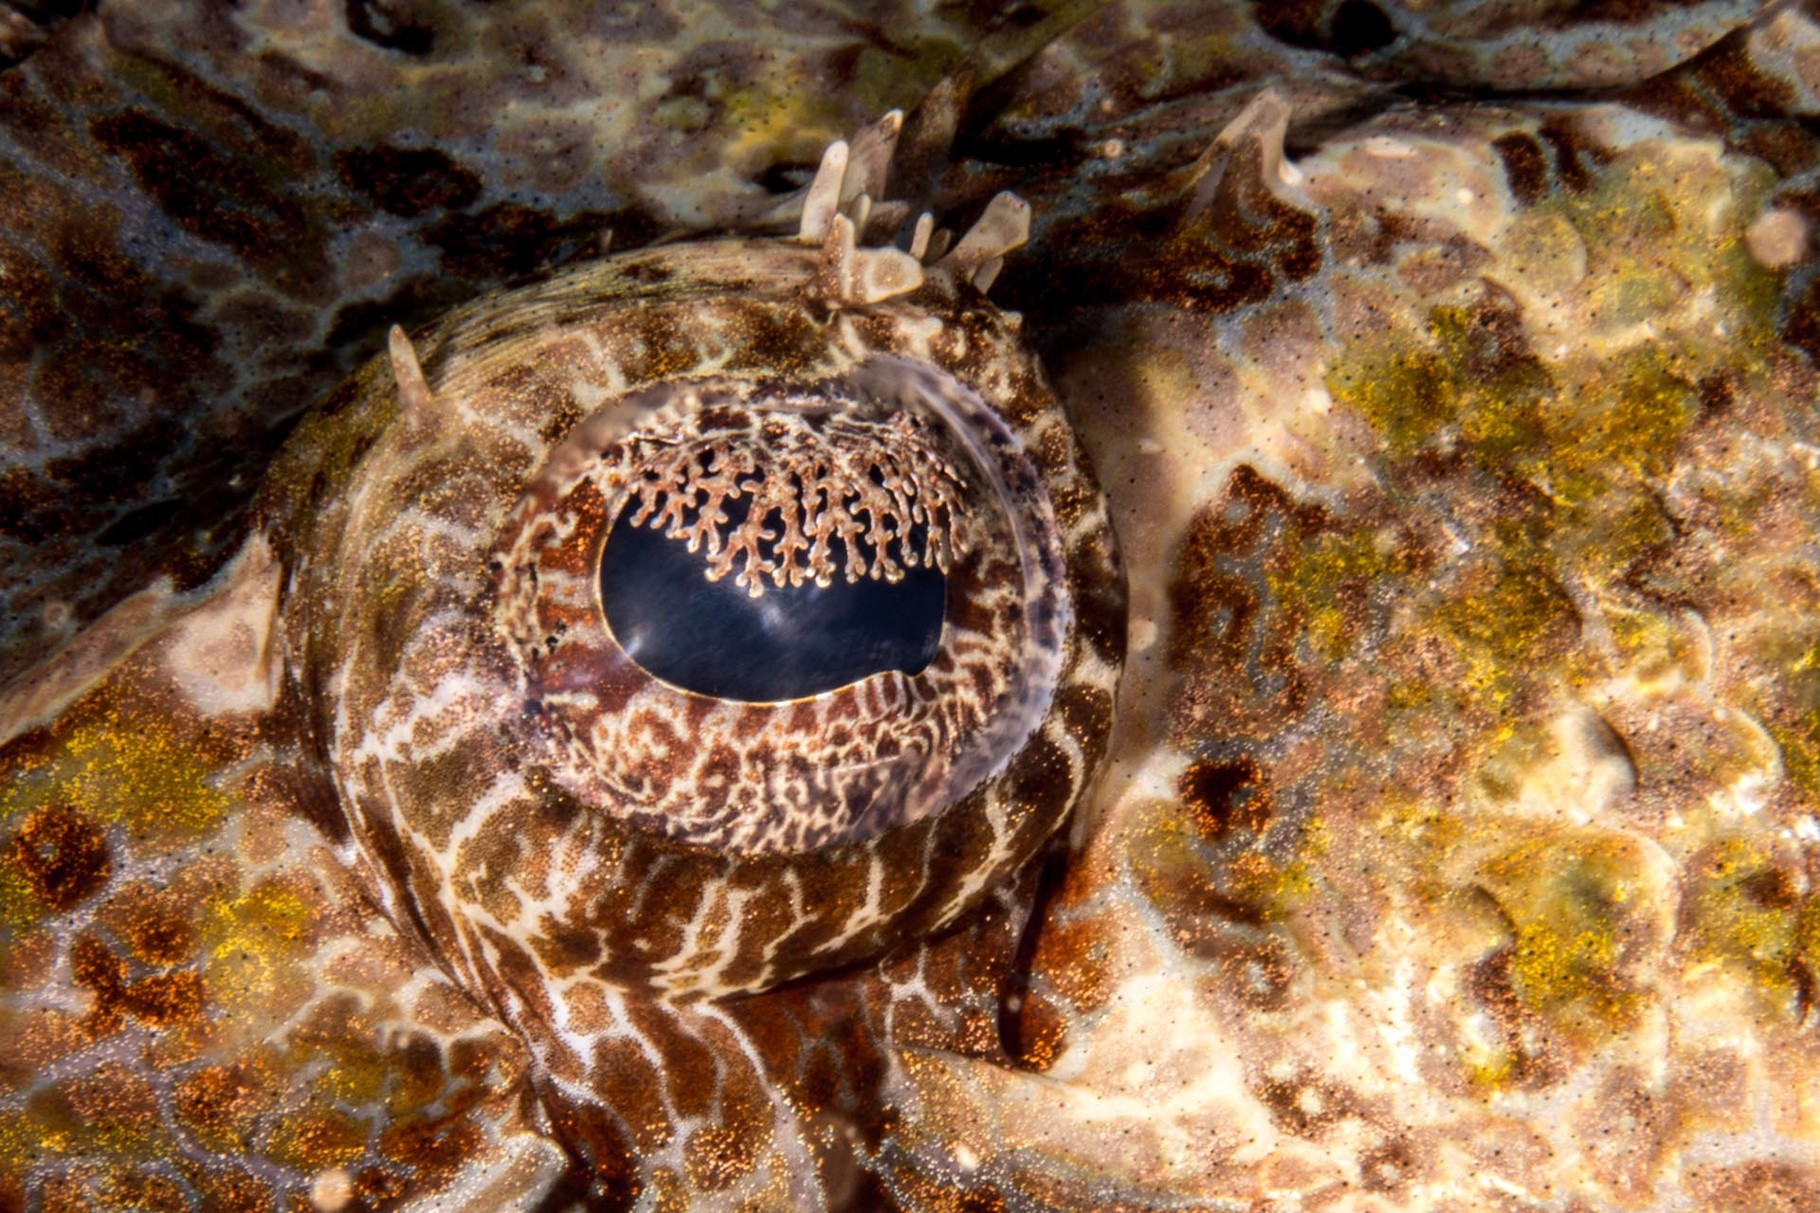 Eye of a crocodile fish, Hienghene